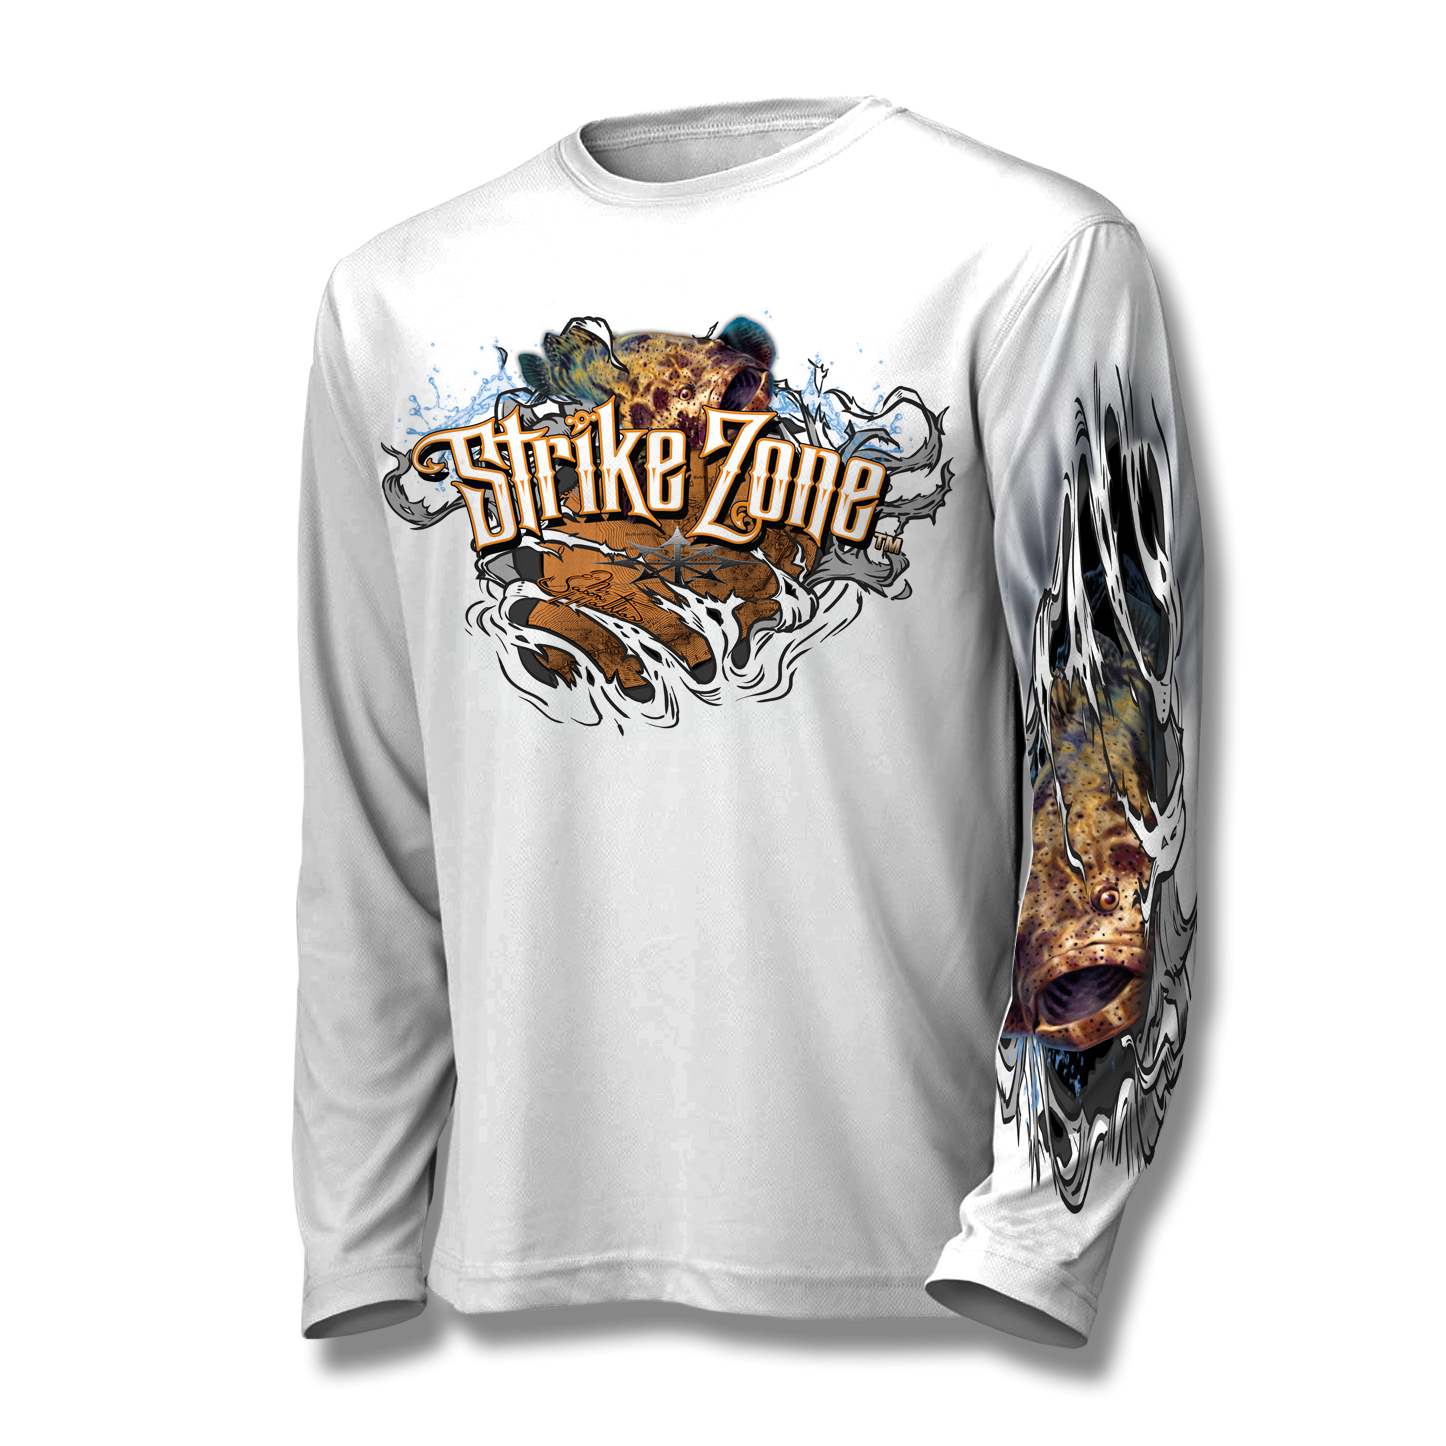 jason-mathias-strike-zone-white-white-grouper-fishing-shirt.png